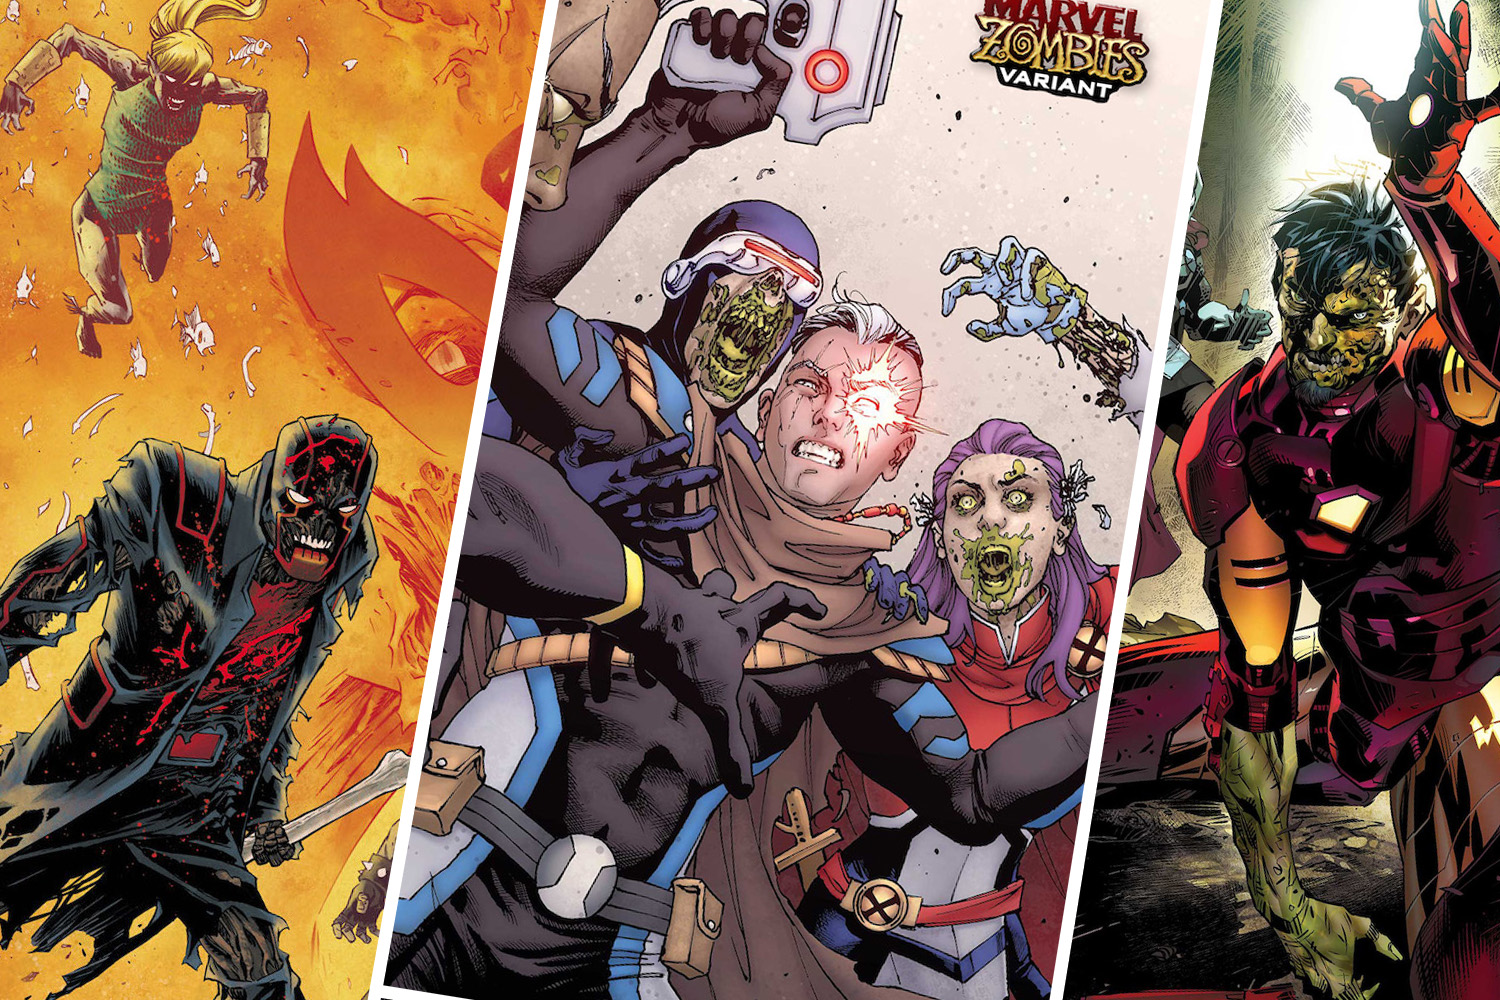 Marvel Zombies invade April 2020 variant covers